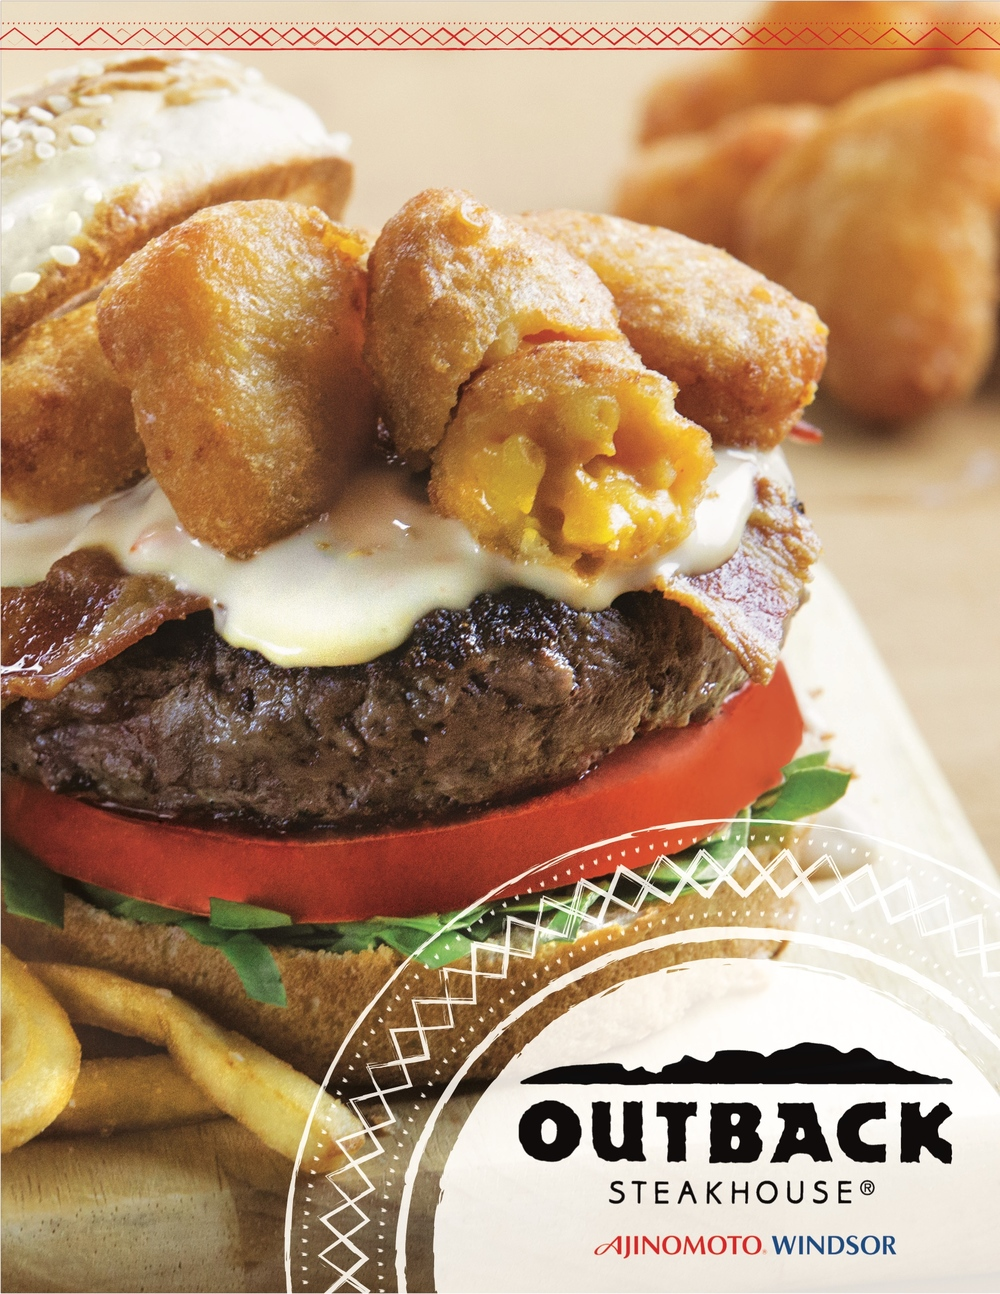 OUTBACK STEAKHOUSE BOOK